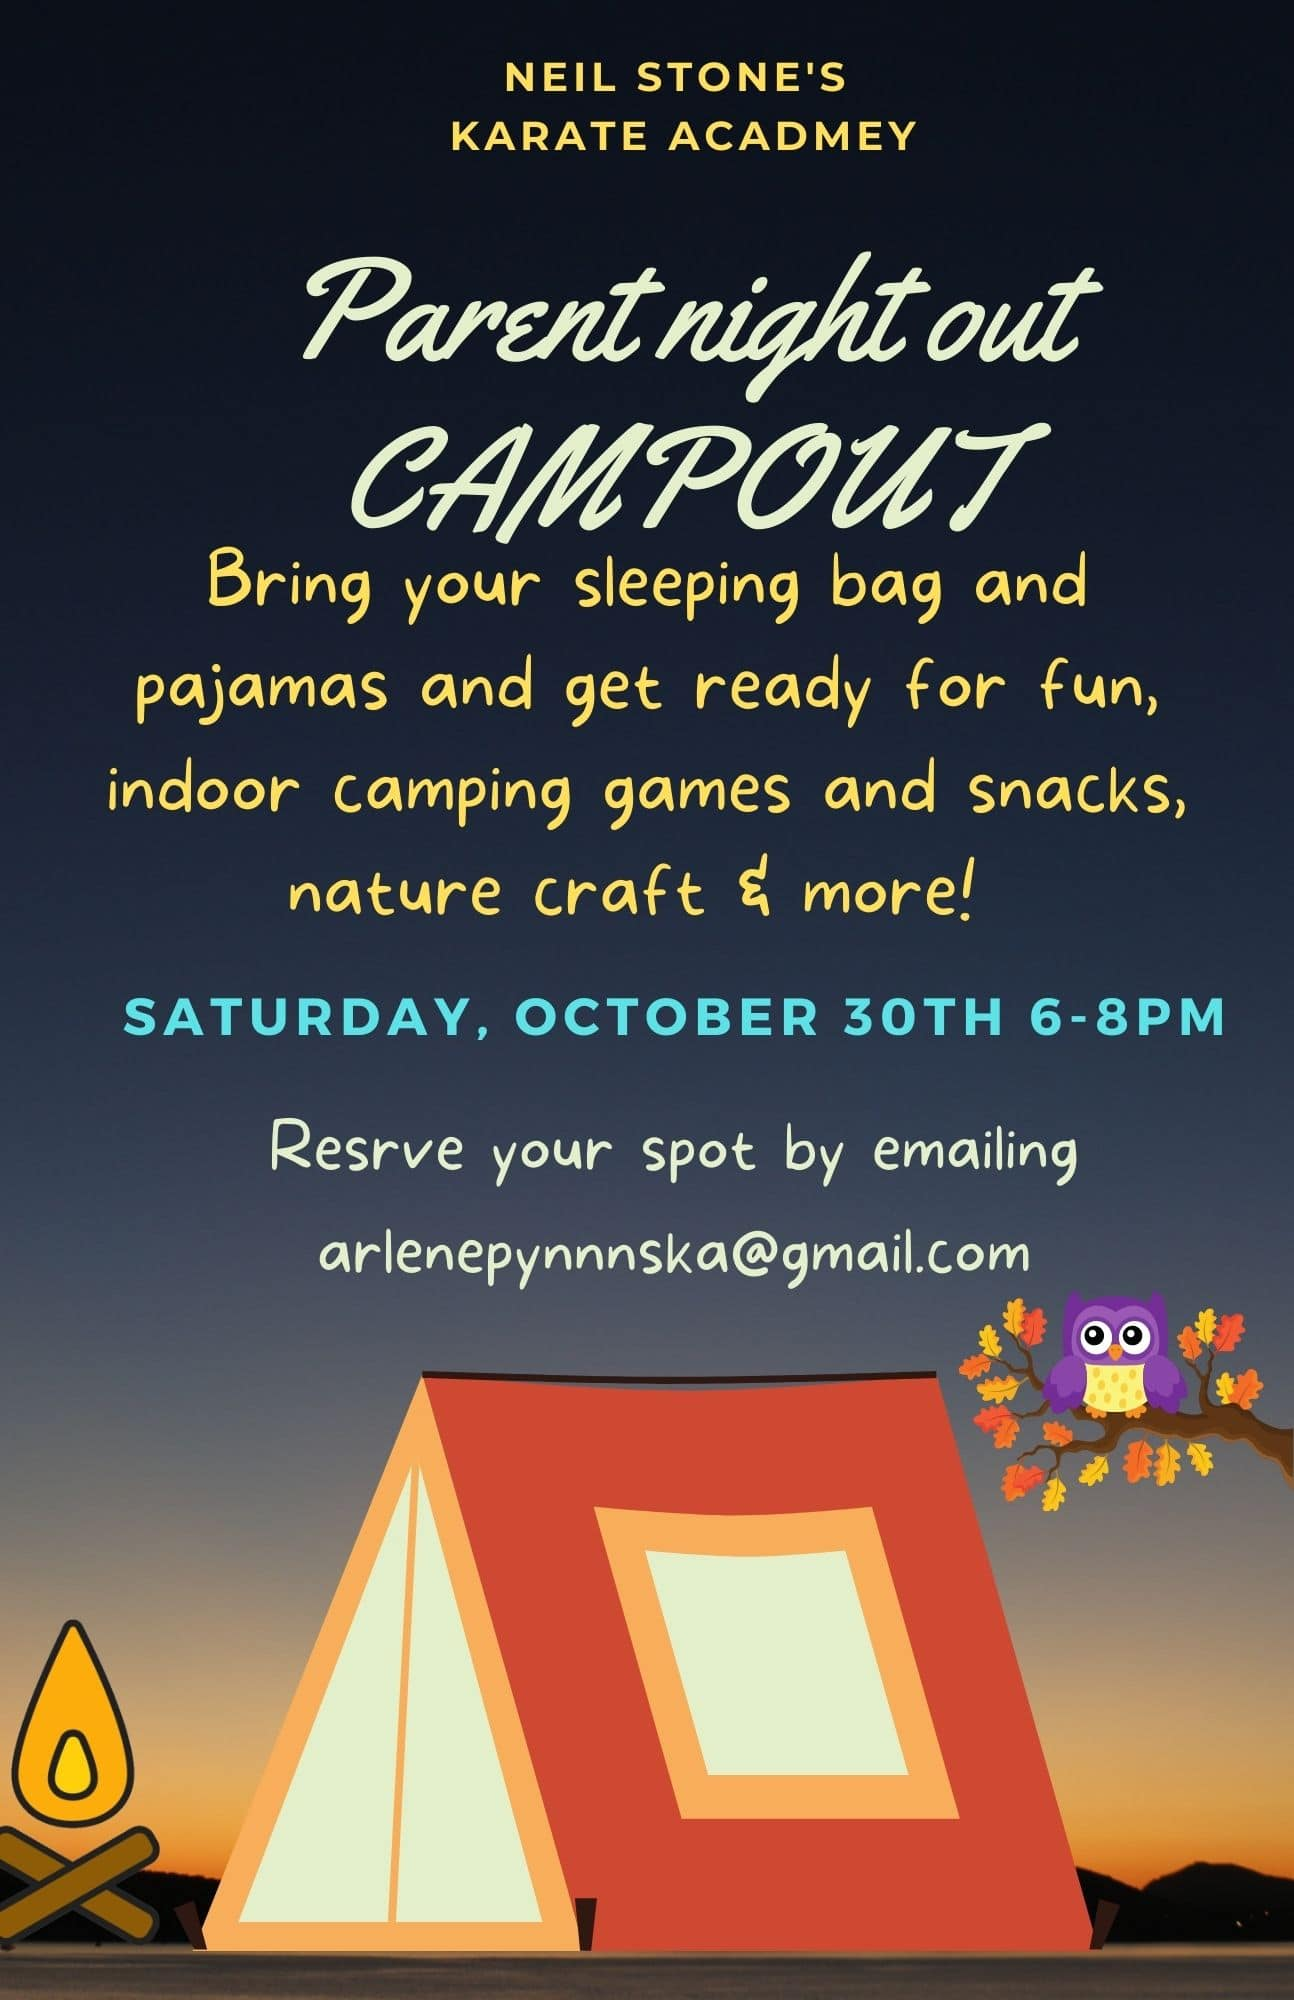 Parents Night Out Campout – October 30th